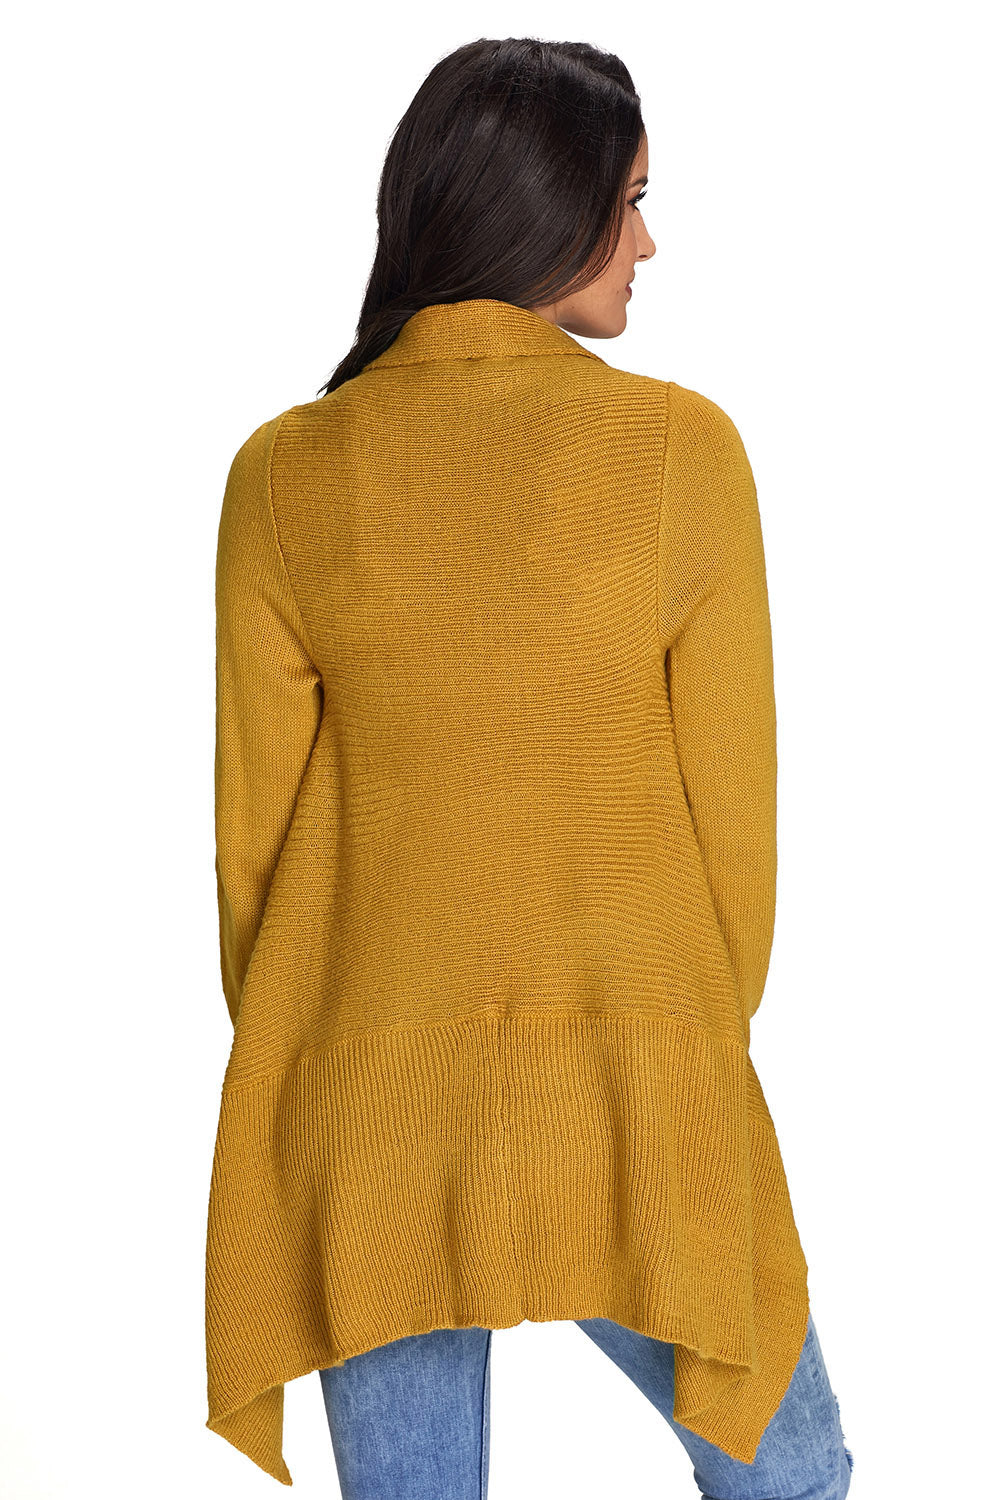 Mustard Waterfall Long Sleeve Sweater Cardigan